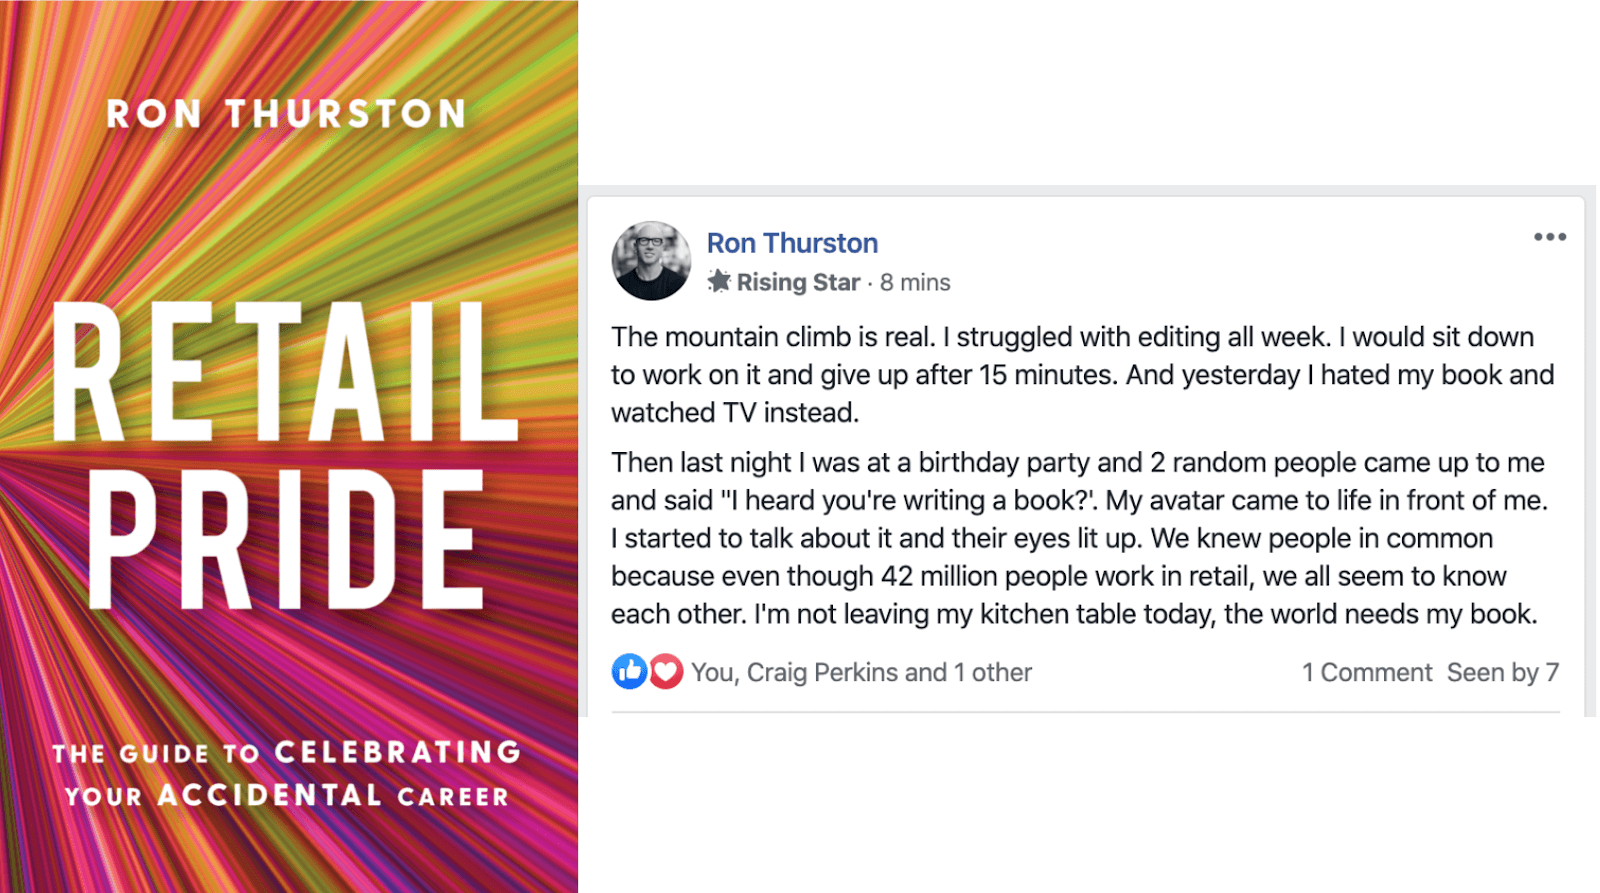 Retail Pride: A post from the Scribe Guided Author community